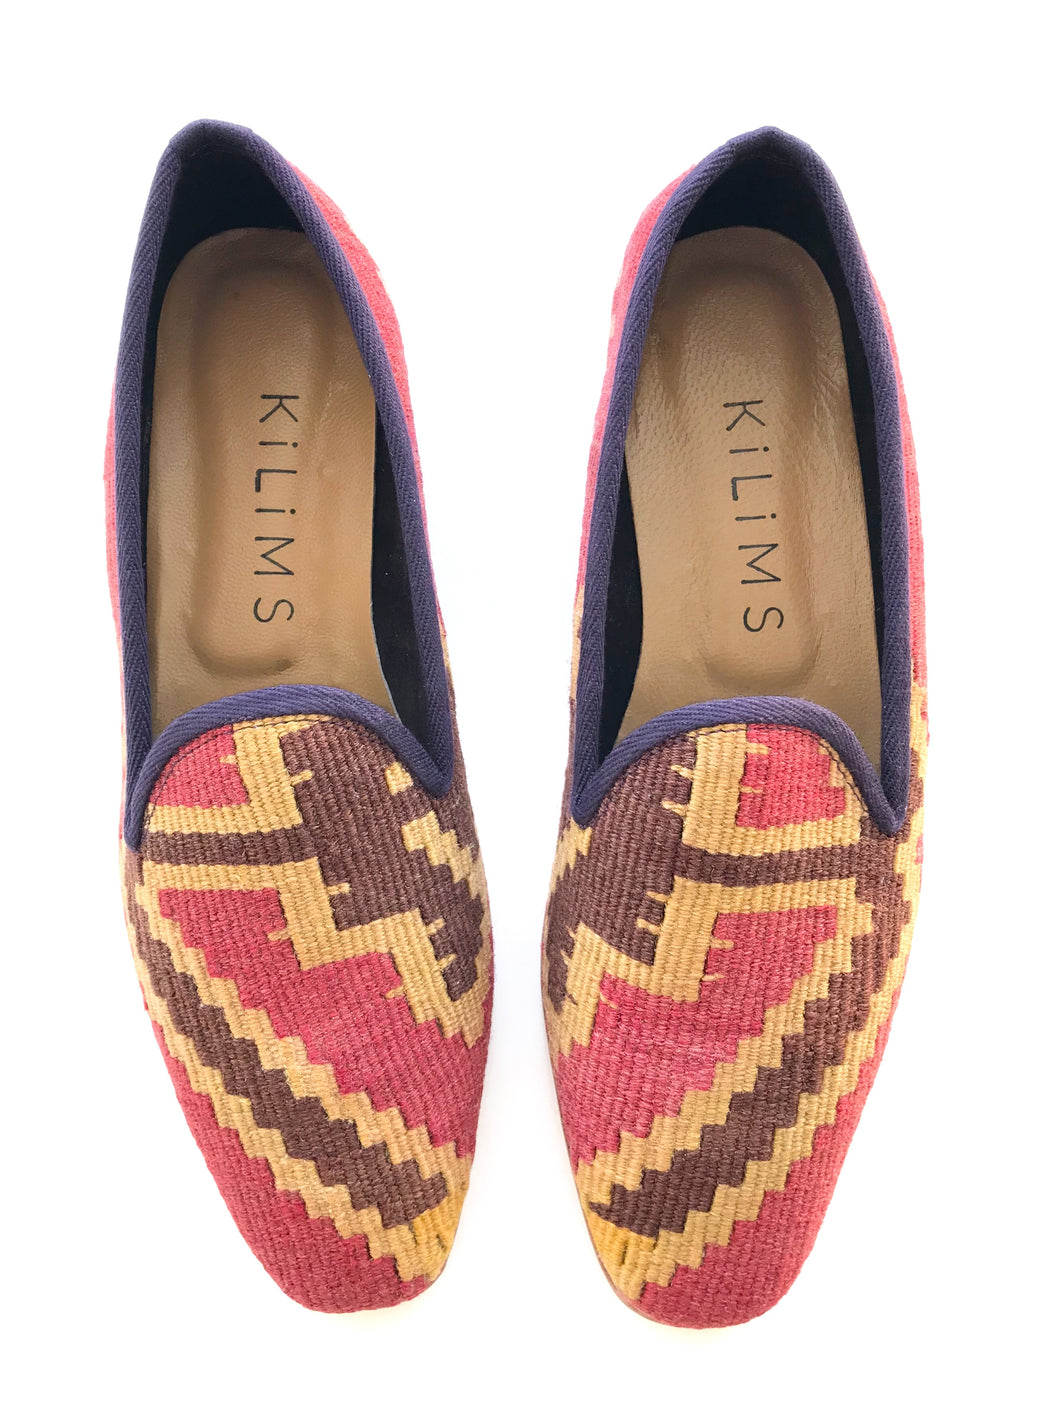 Women's Kilim Slippers size 41 (US size 11)